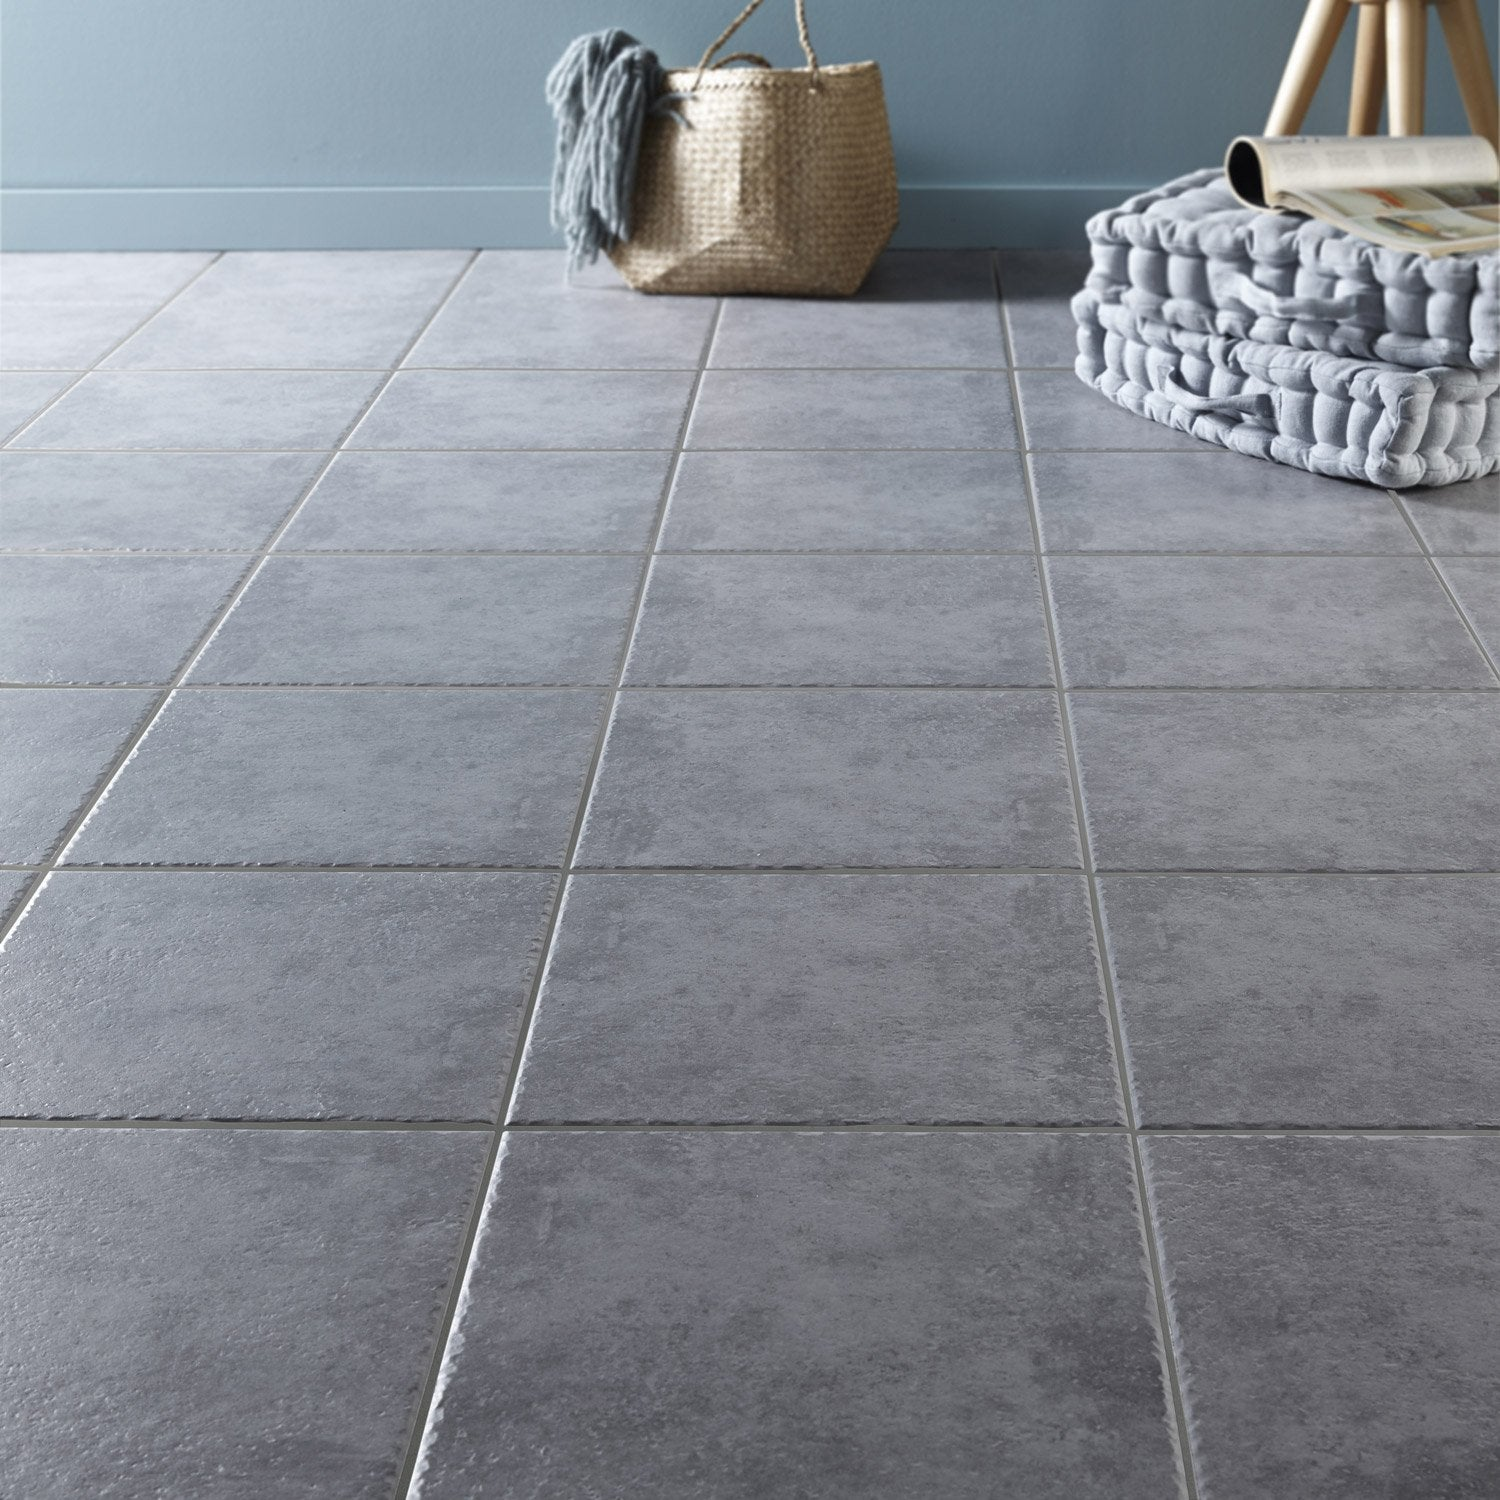 Carrelage sol gris souris effet pierre michigan x l for Carrelage sol gris